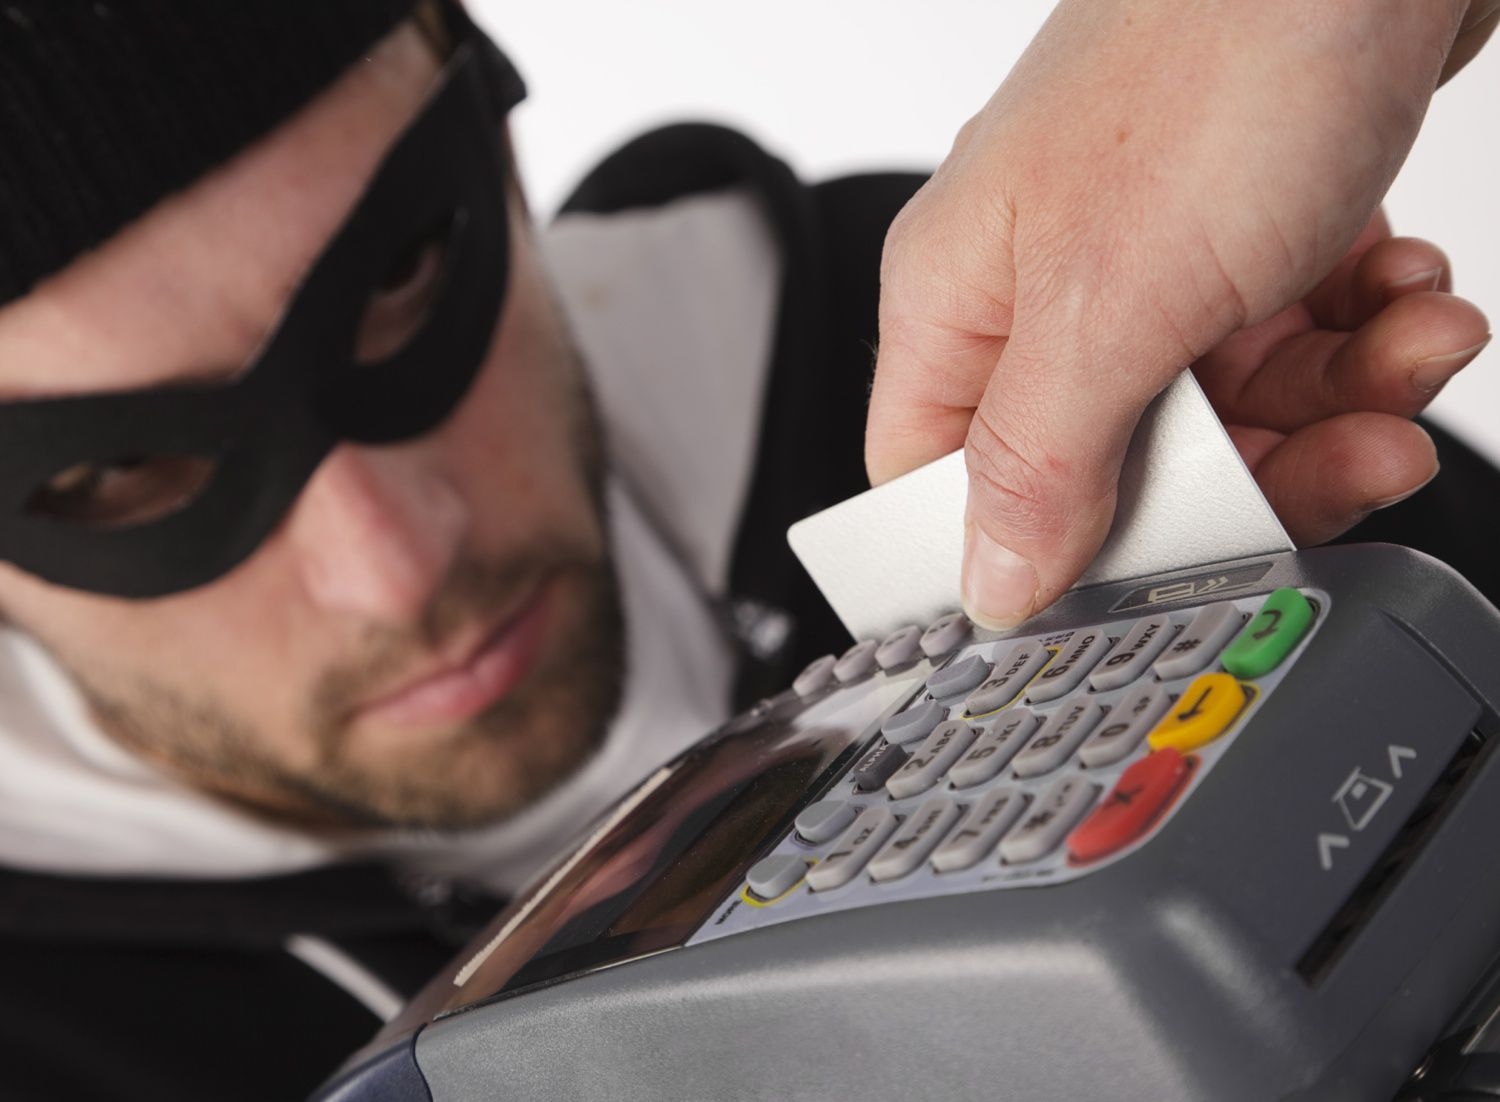 Account Bank Number Security